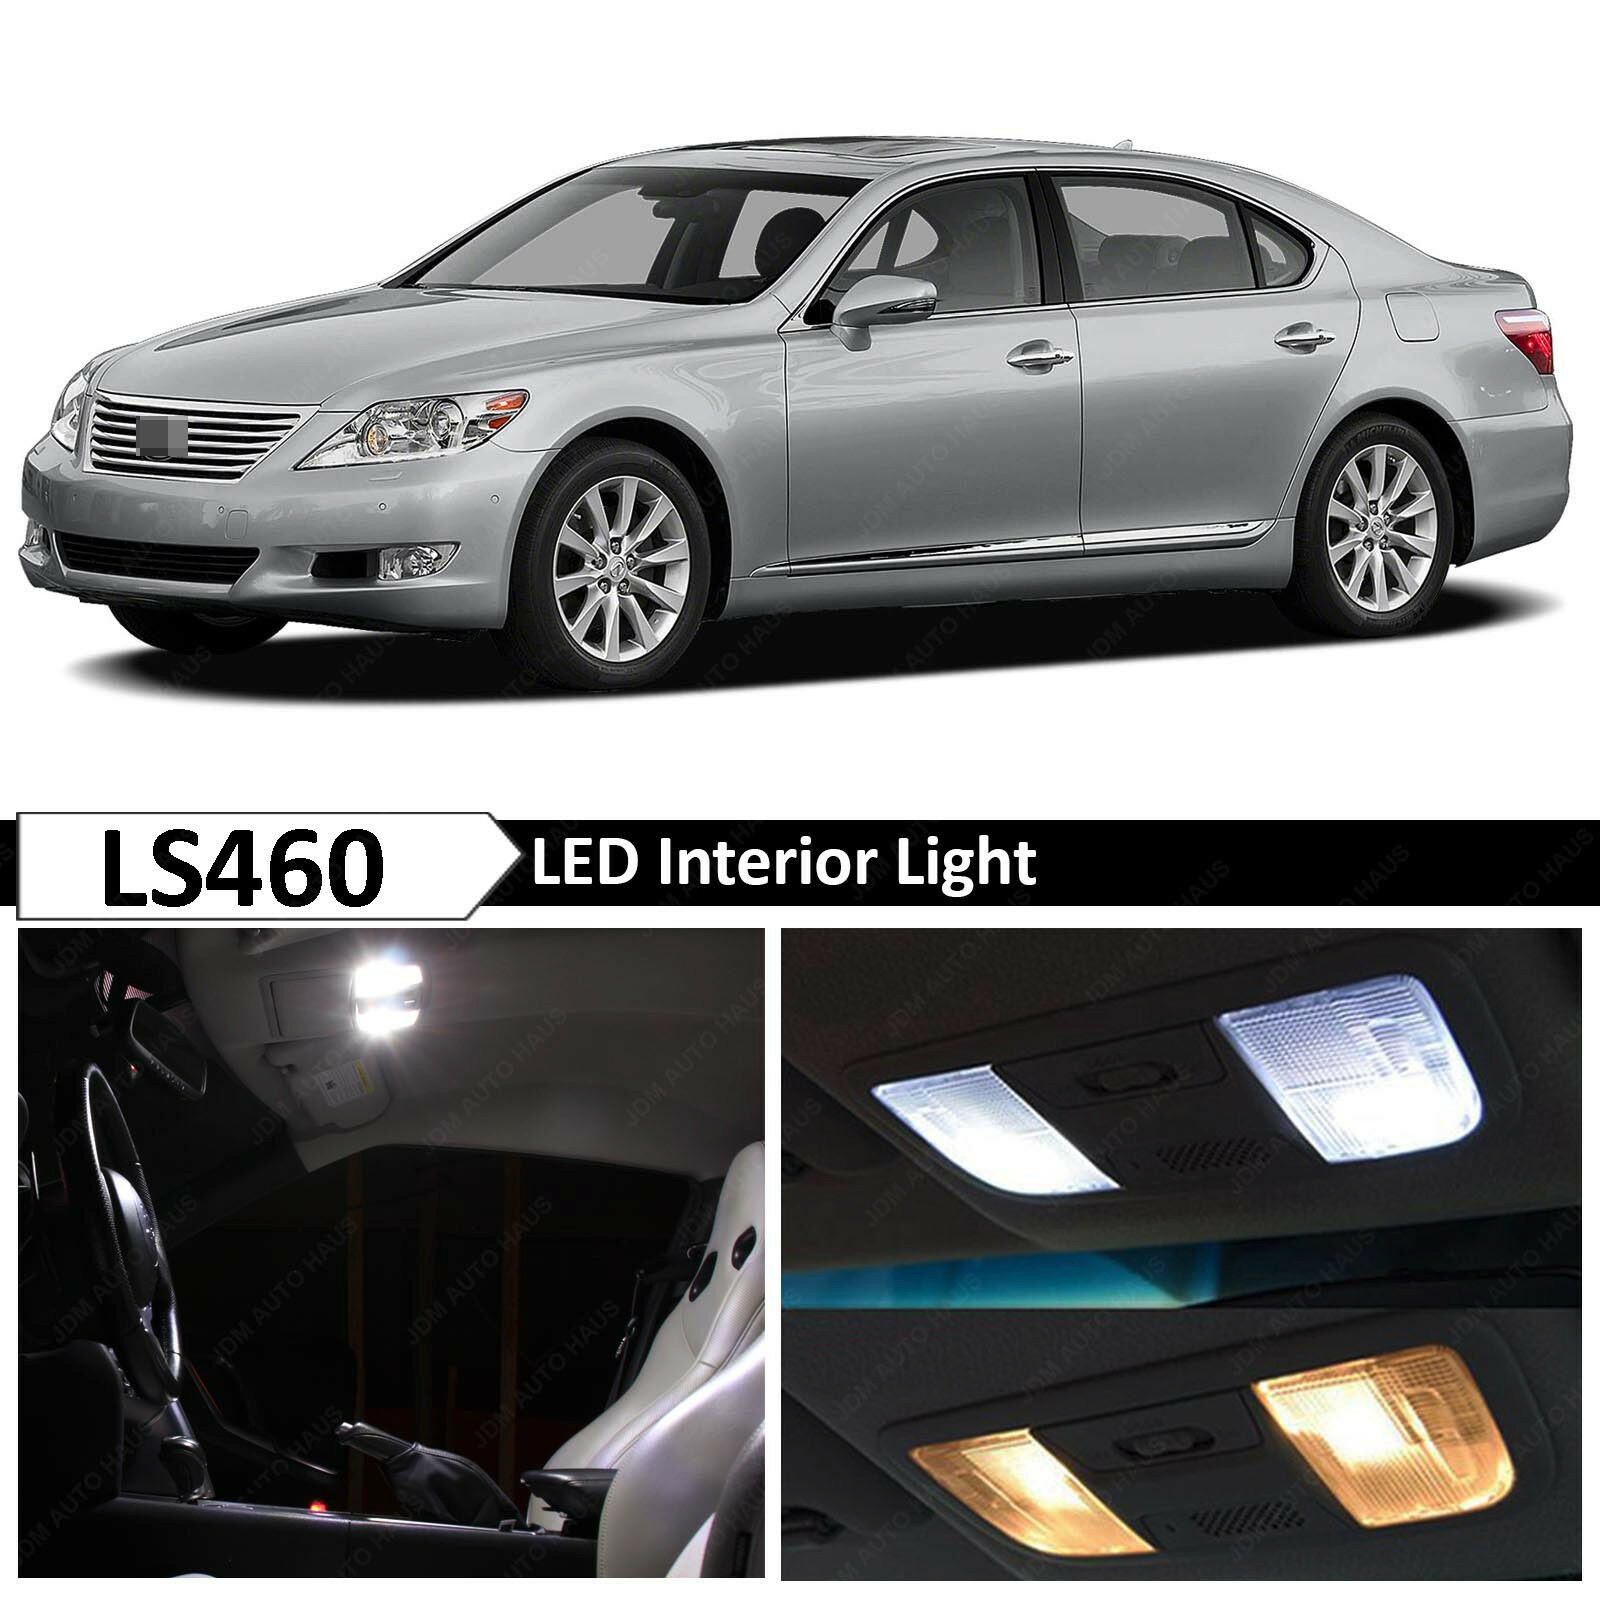 2013 Lexus Ls460 For Sale: 15x White Interior LED Lights Package For 2007-2012 Lexus